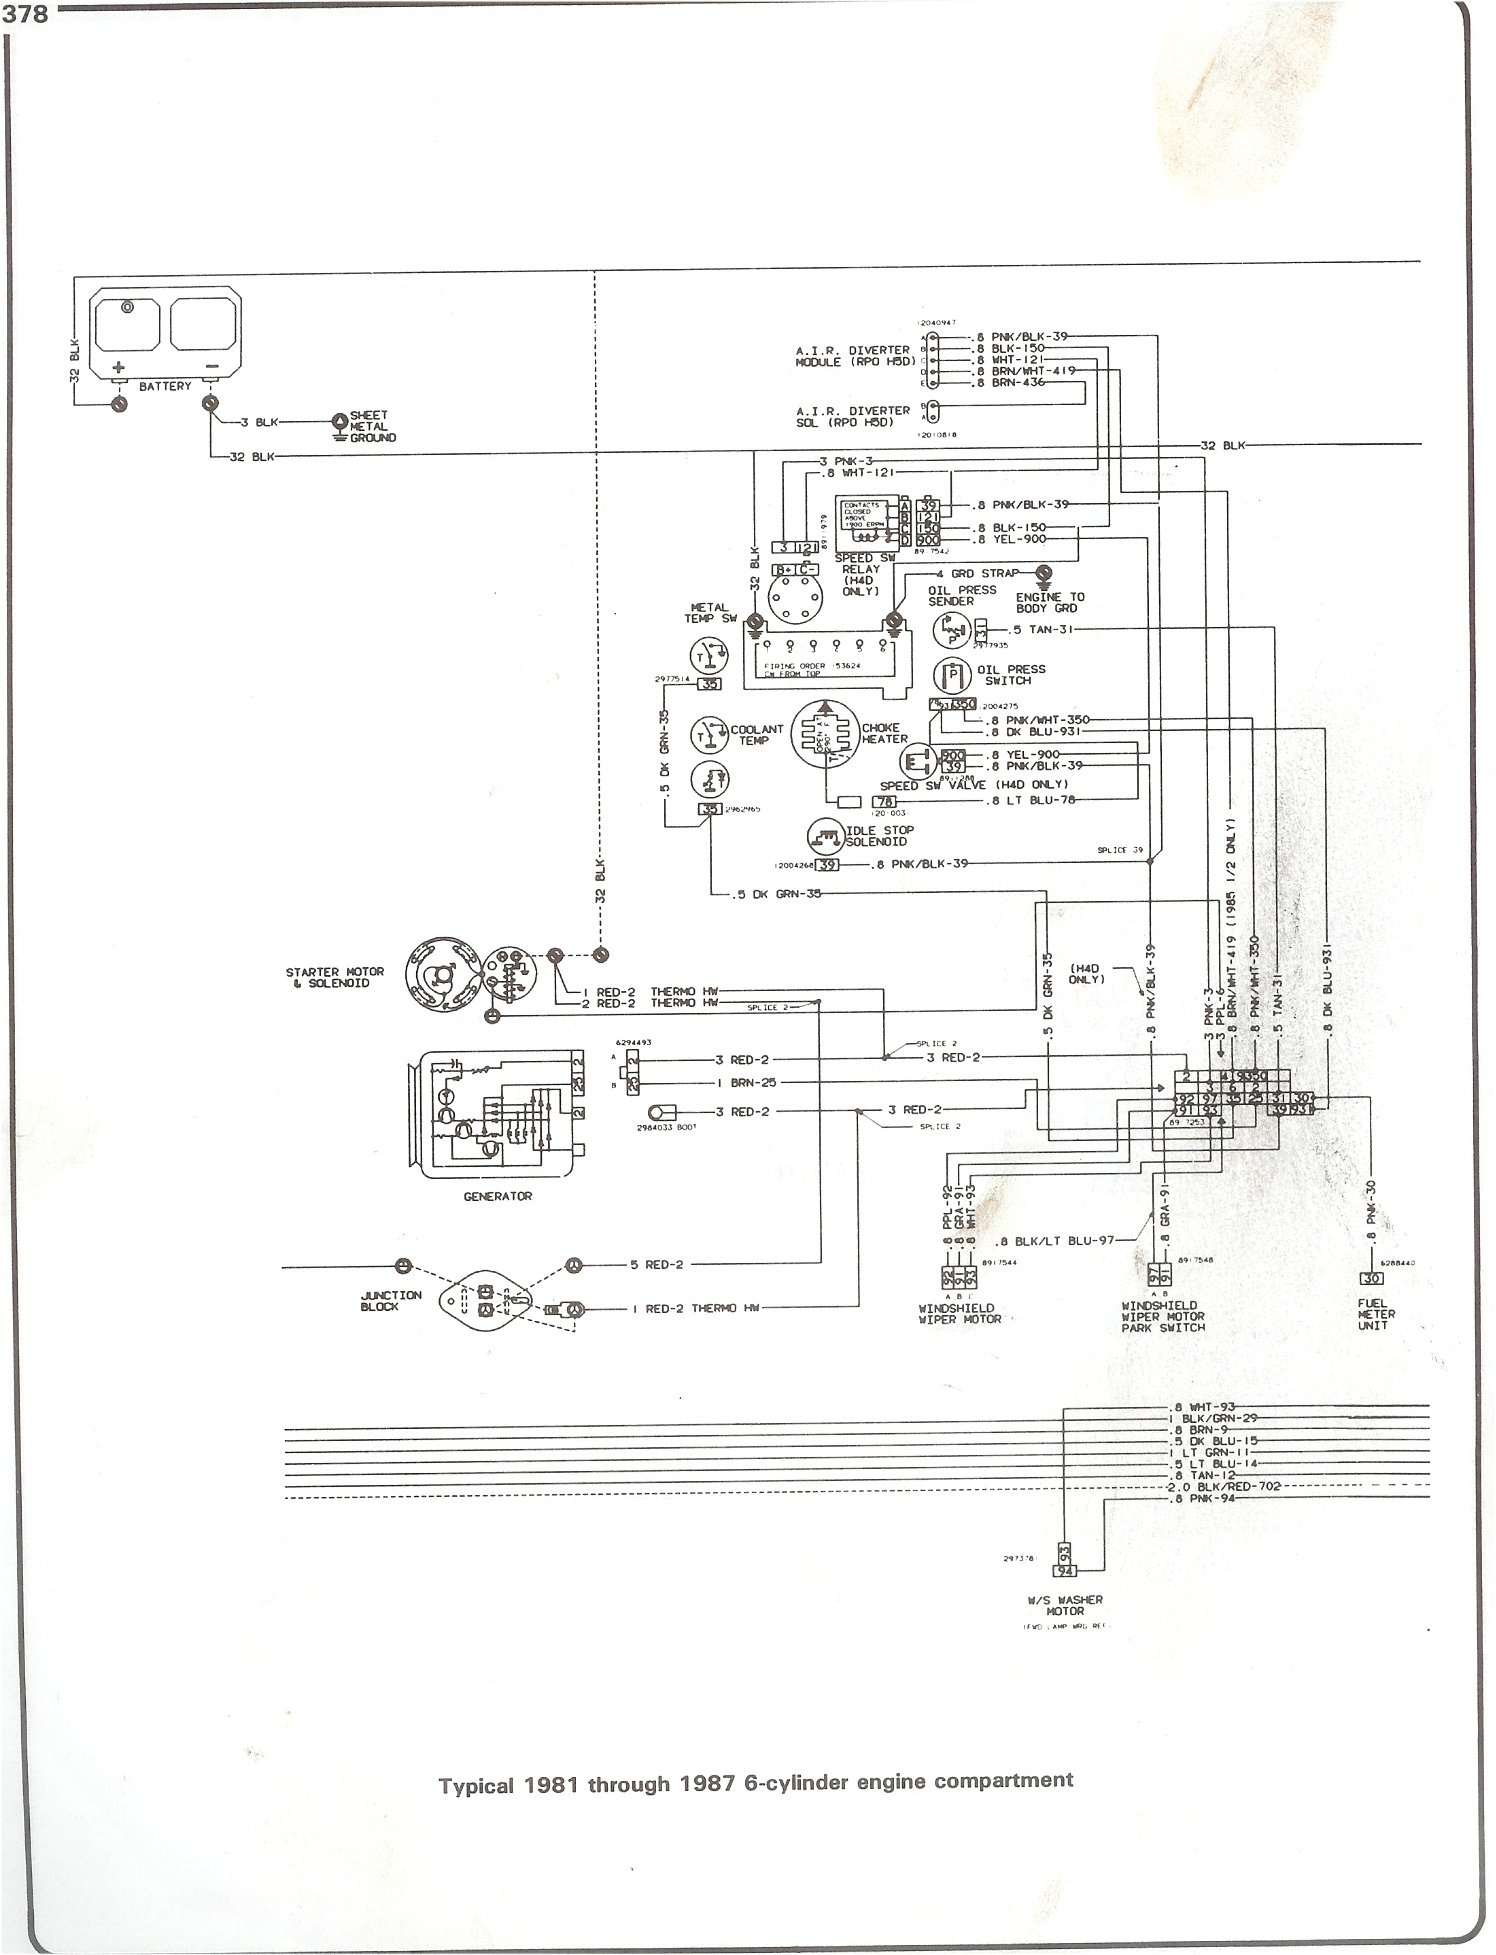 Mazda 5 Wiring Diagram also 257237 Speed Sensor Location Toyota T100 likewise Volvo Penta Explodedview 7749307 44 10670 further Diesel Engine Parts Name Pdf moreover 1992 Honda Prelude Air Conditioner Electrical Circuit And Schematics. on 2010 mazda 2 wiring schematics